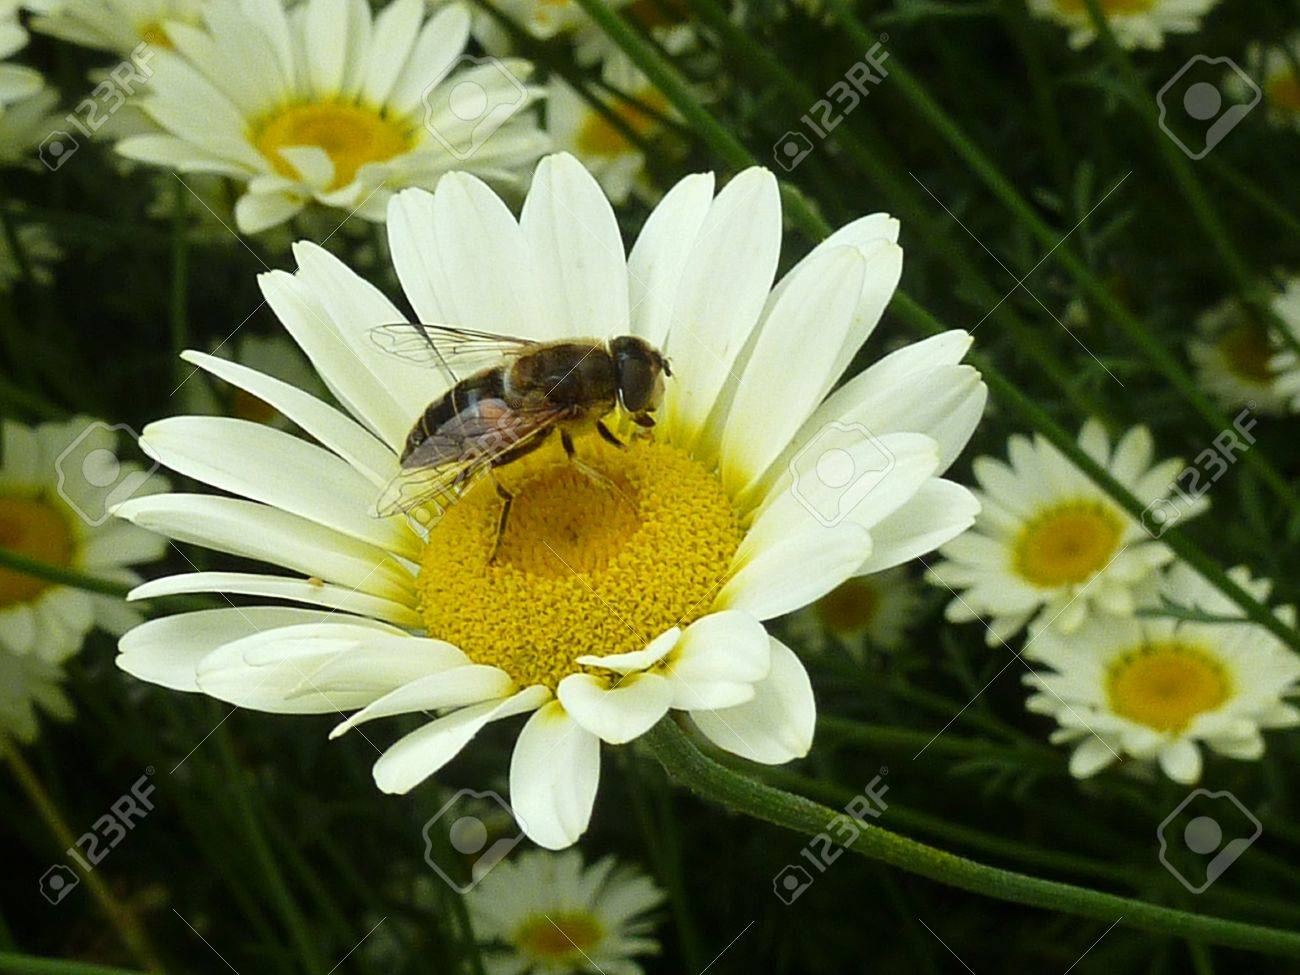 Closeup of bee pollinating daisy type flower stock photo picture closeup of bee pollinating daisy type flower stock photo 15207224 dhlflorist Images